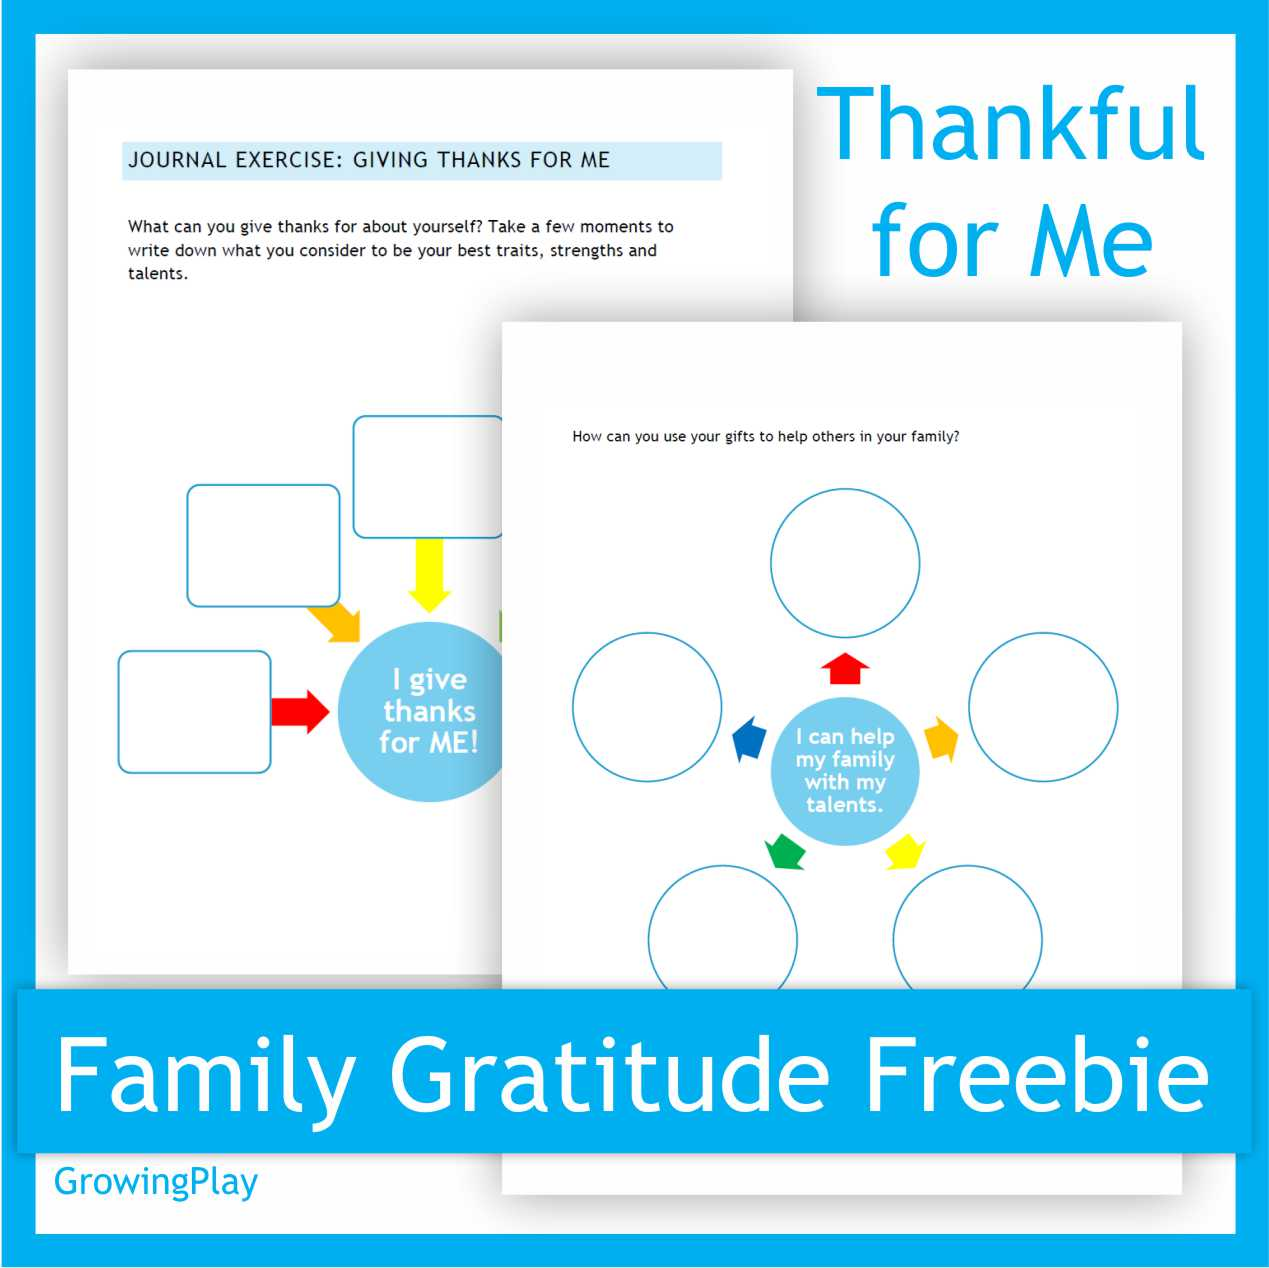 We are taking on the Family Gratitude Challenge to improve our family bond and to be grateful for all that we have. The first lesson is titledThankful for Me.